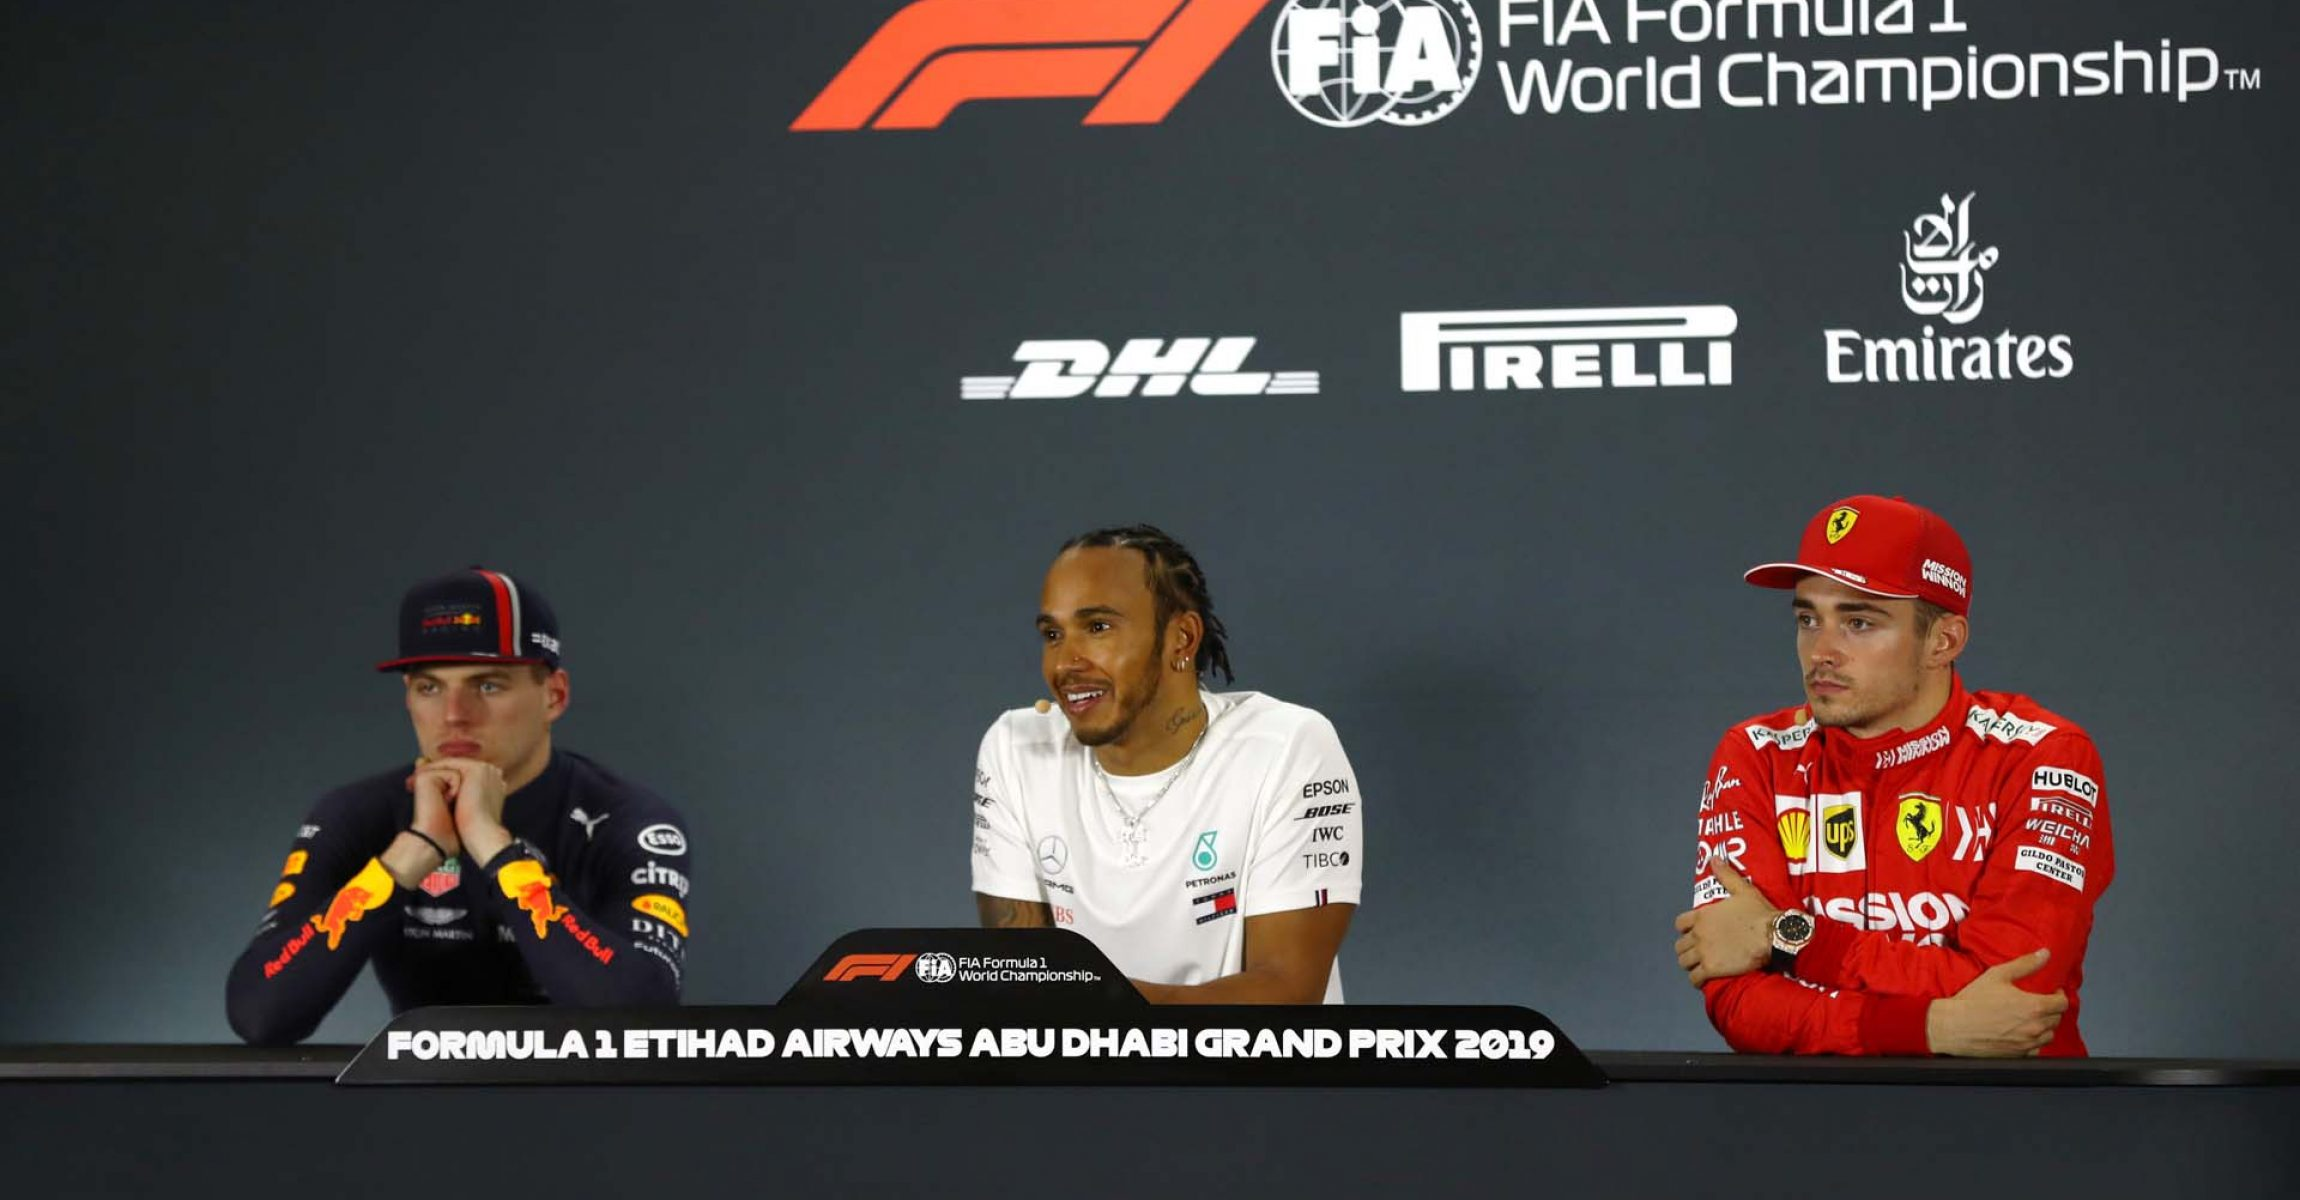 ABU DHABI, UNITED ARAB EMIRATES - DECEMBER 01: Race winner Lewis Hamilton of Great Britain and Mercedes GP, second placed Max Verstappen of Netherlands and Red Bull Racing and third placed Charles Leclerc of Monaco and Ferrari talk in the press conference after the F1 Grand Prix of Abu Dhabi at Yas Marina Circuit on December 01, 2019 in Abu Dhabi, United Arab Emirates. (Photo by Francois Nel/Getty Images) // Getty Images / Red Bull Content Pool // AP-22BVJNRX92111 // Usage for editorial use only //